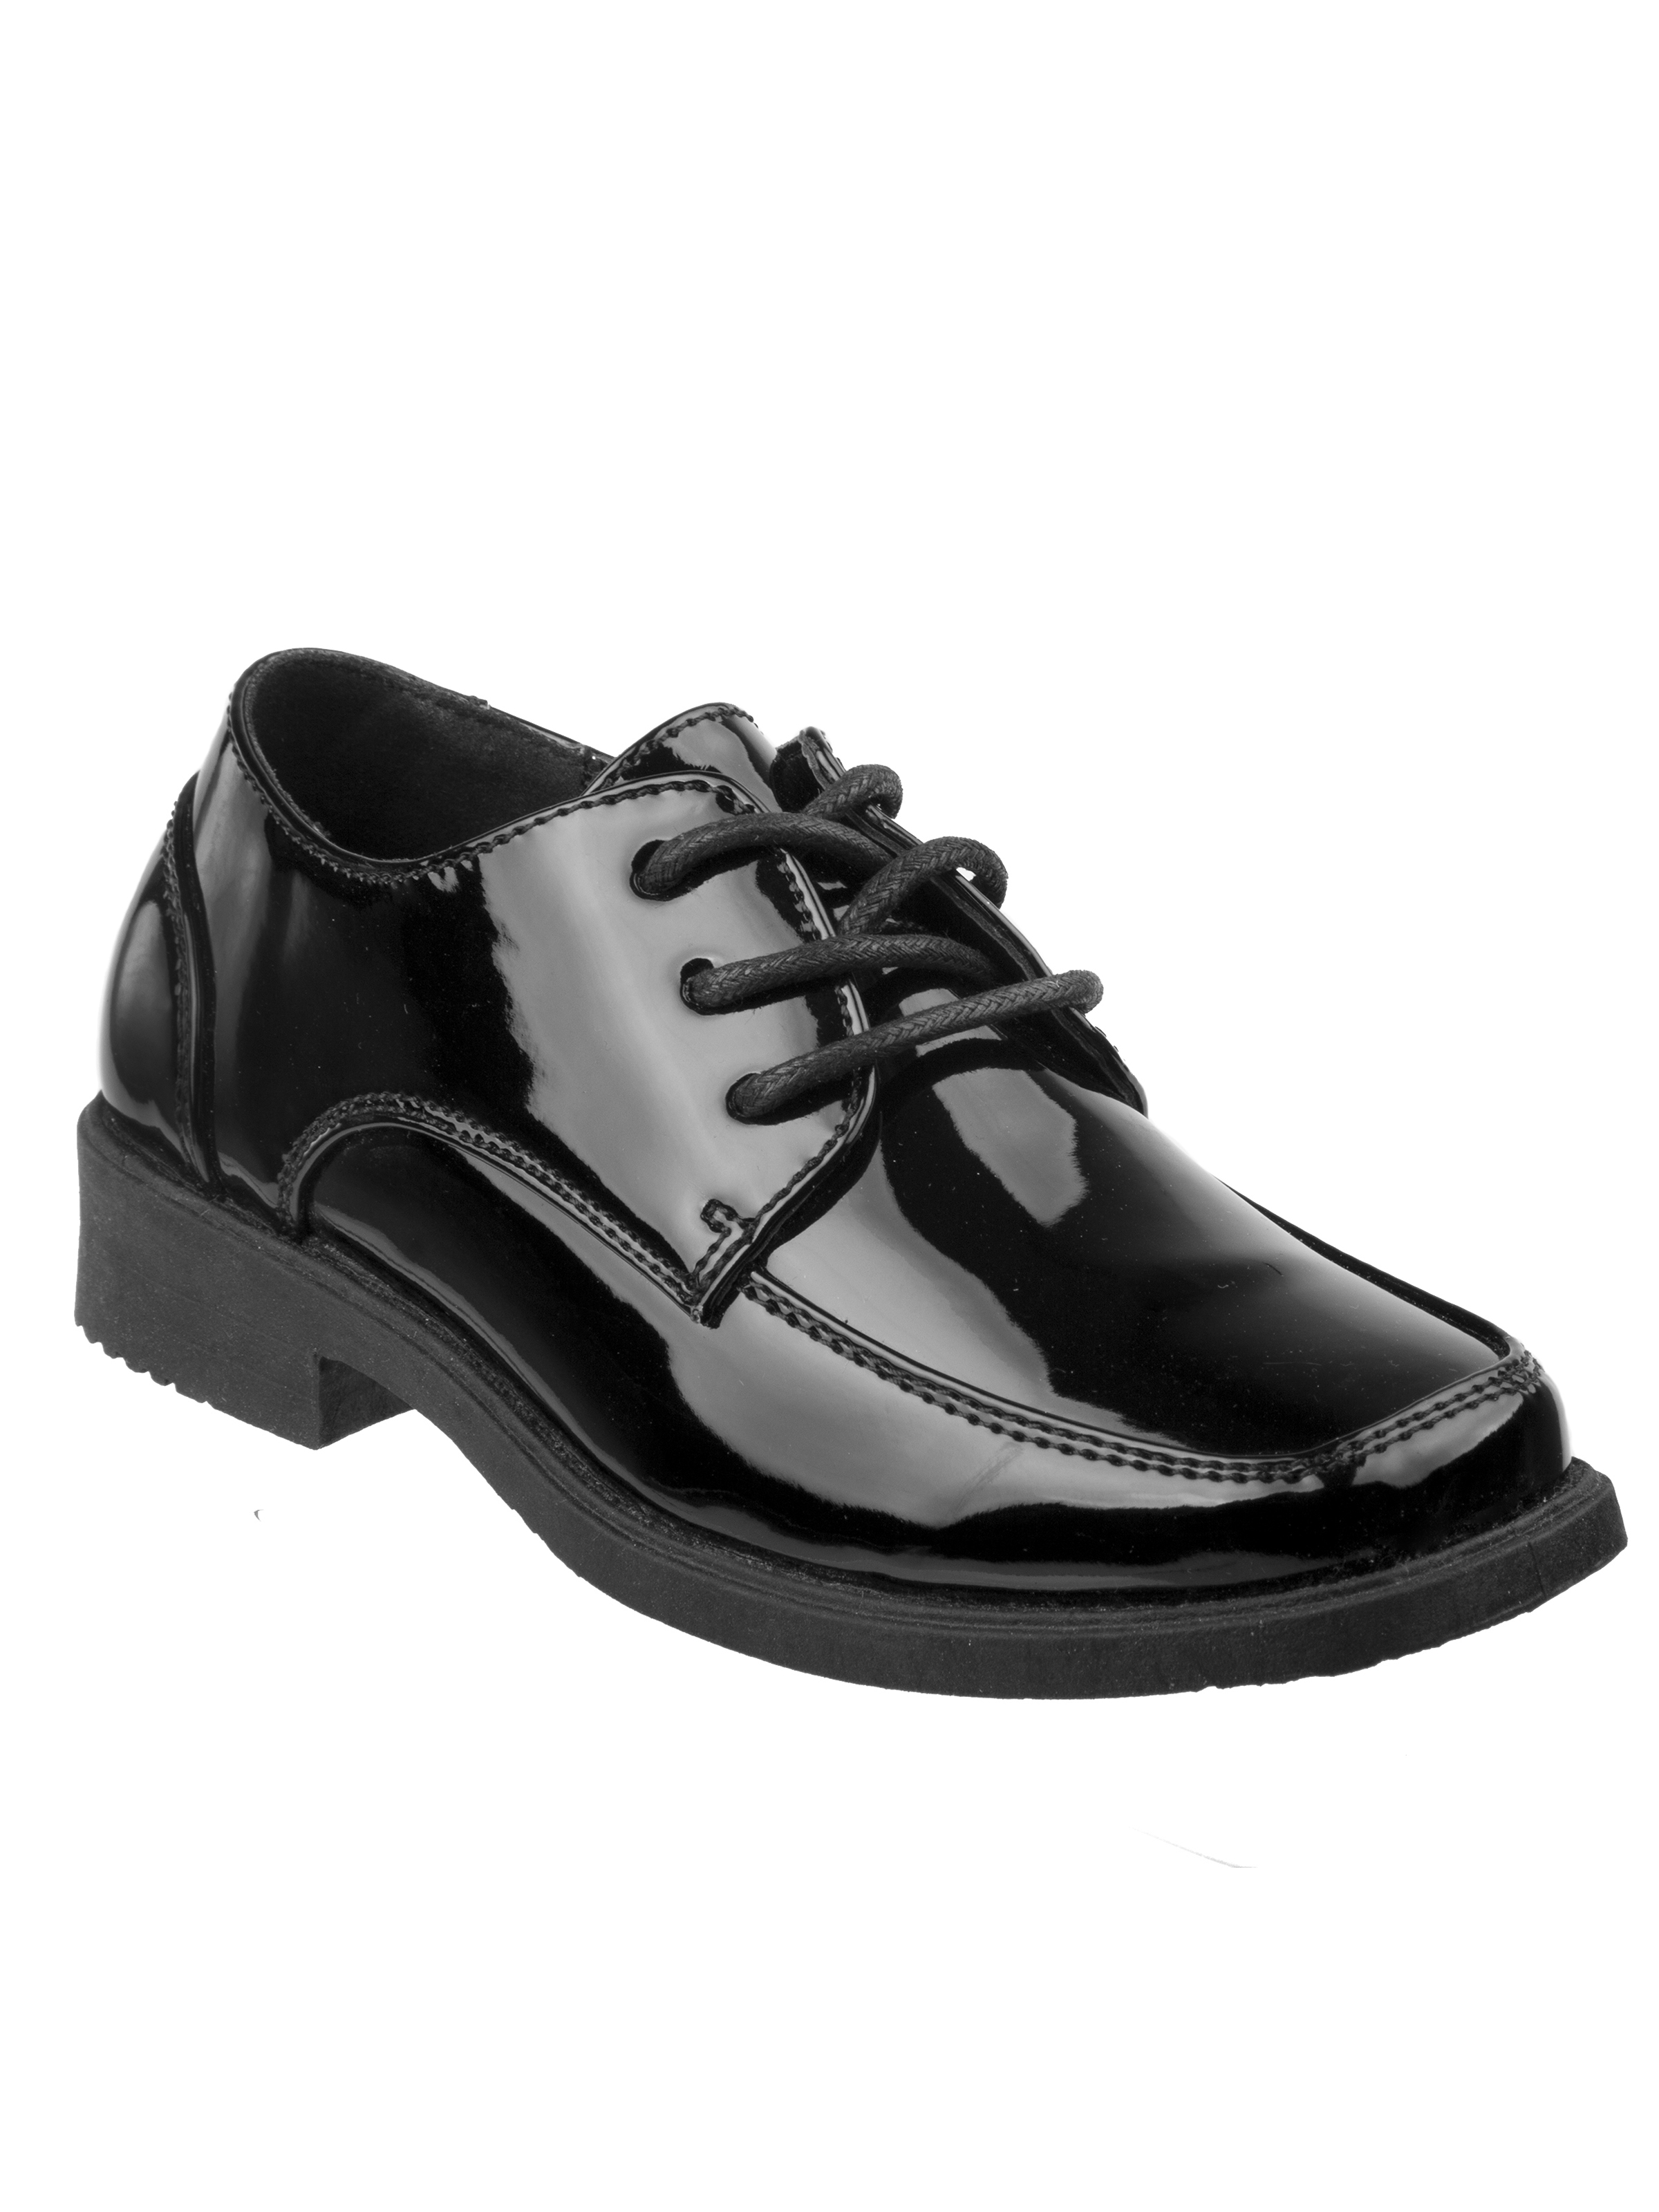 Toddler Boy's Lace Up Dress Shoes